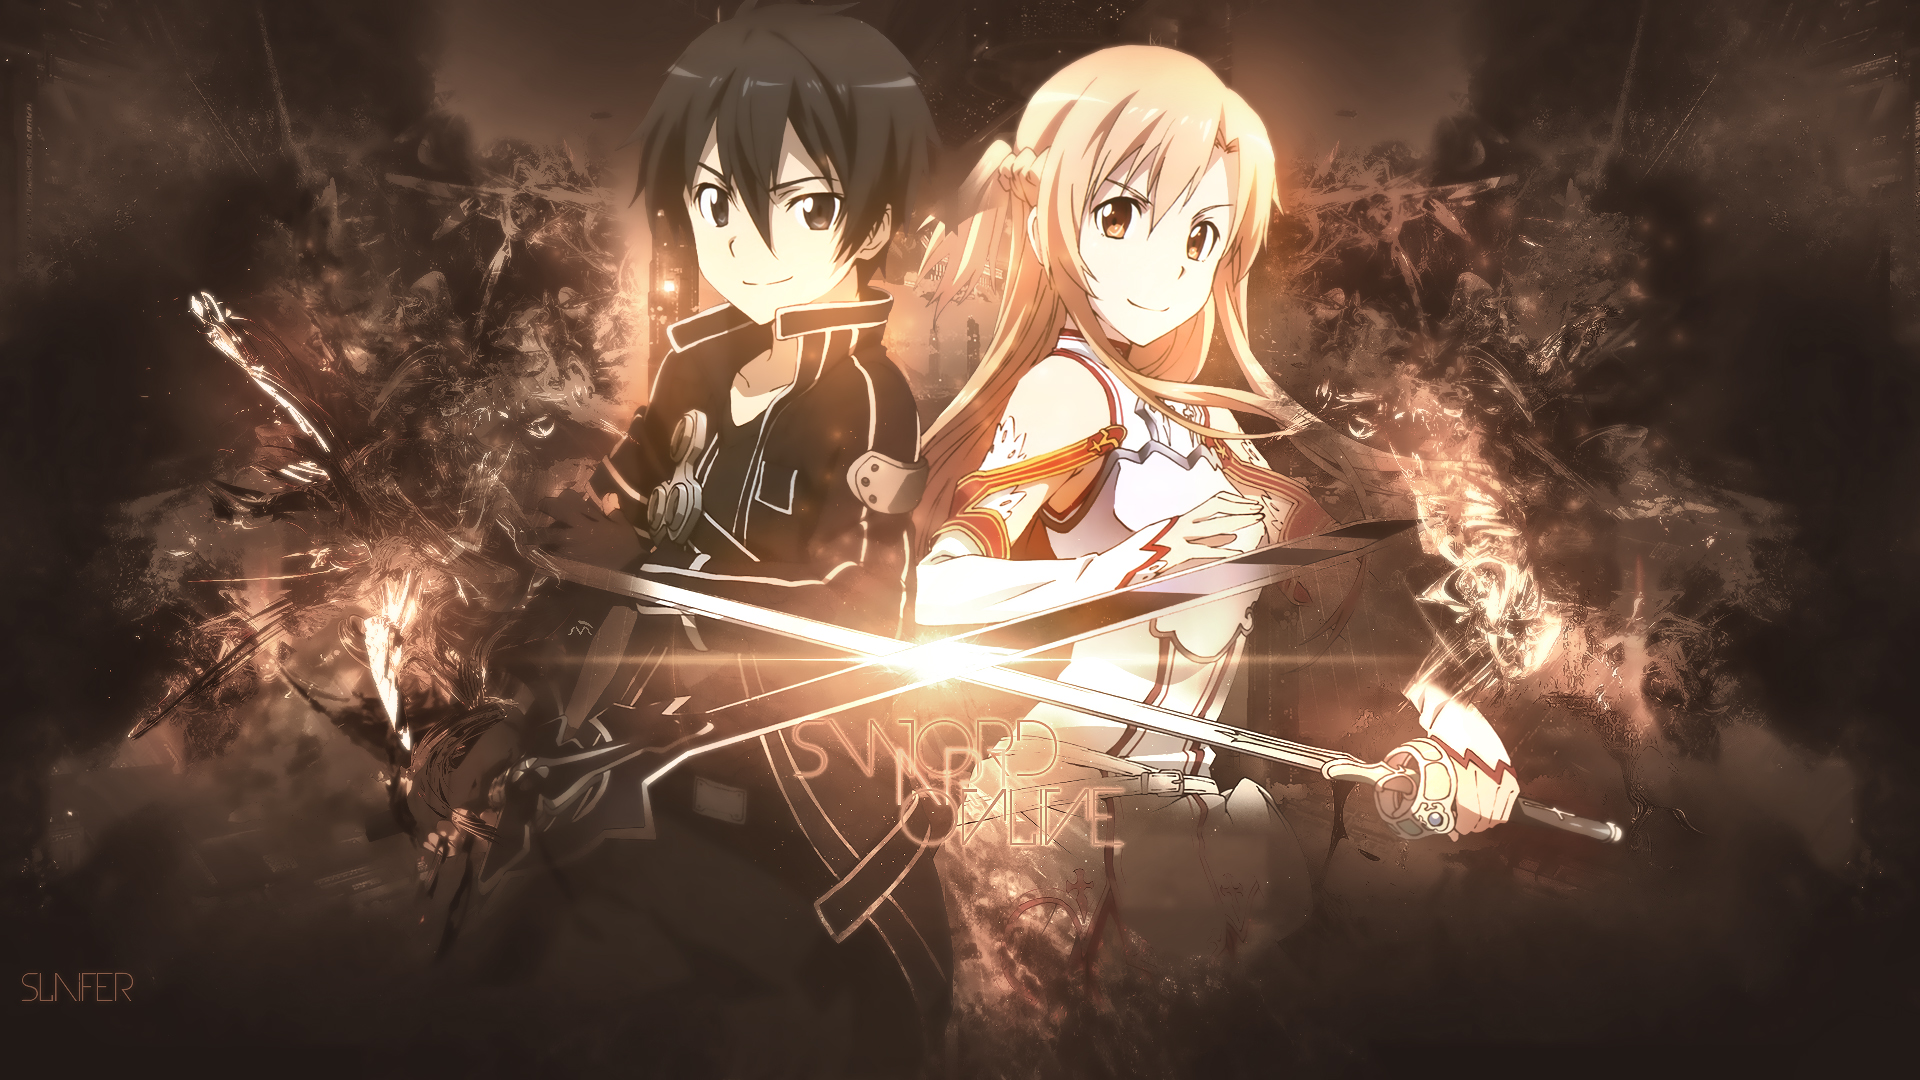 wallpaper sword art online hd by sl4ifer d5d3541 1920x1080